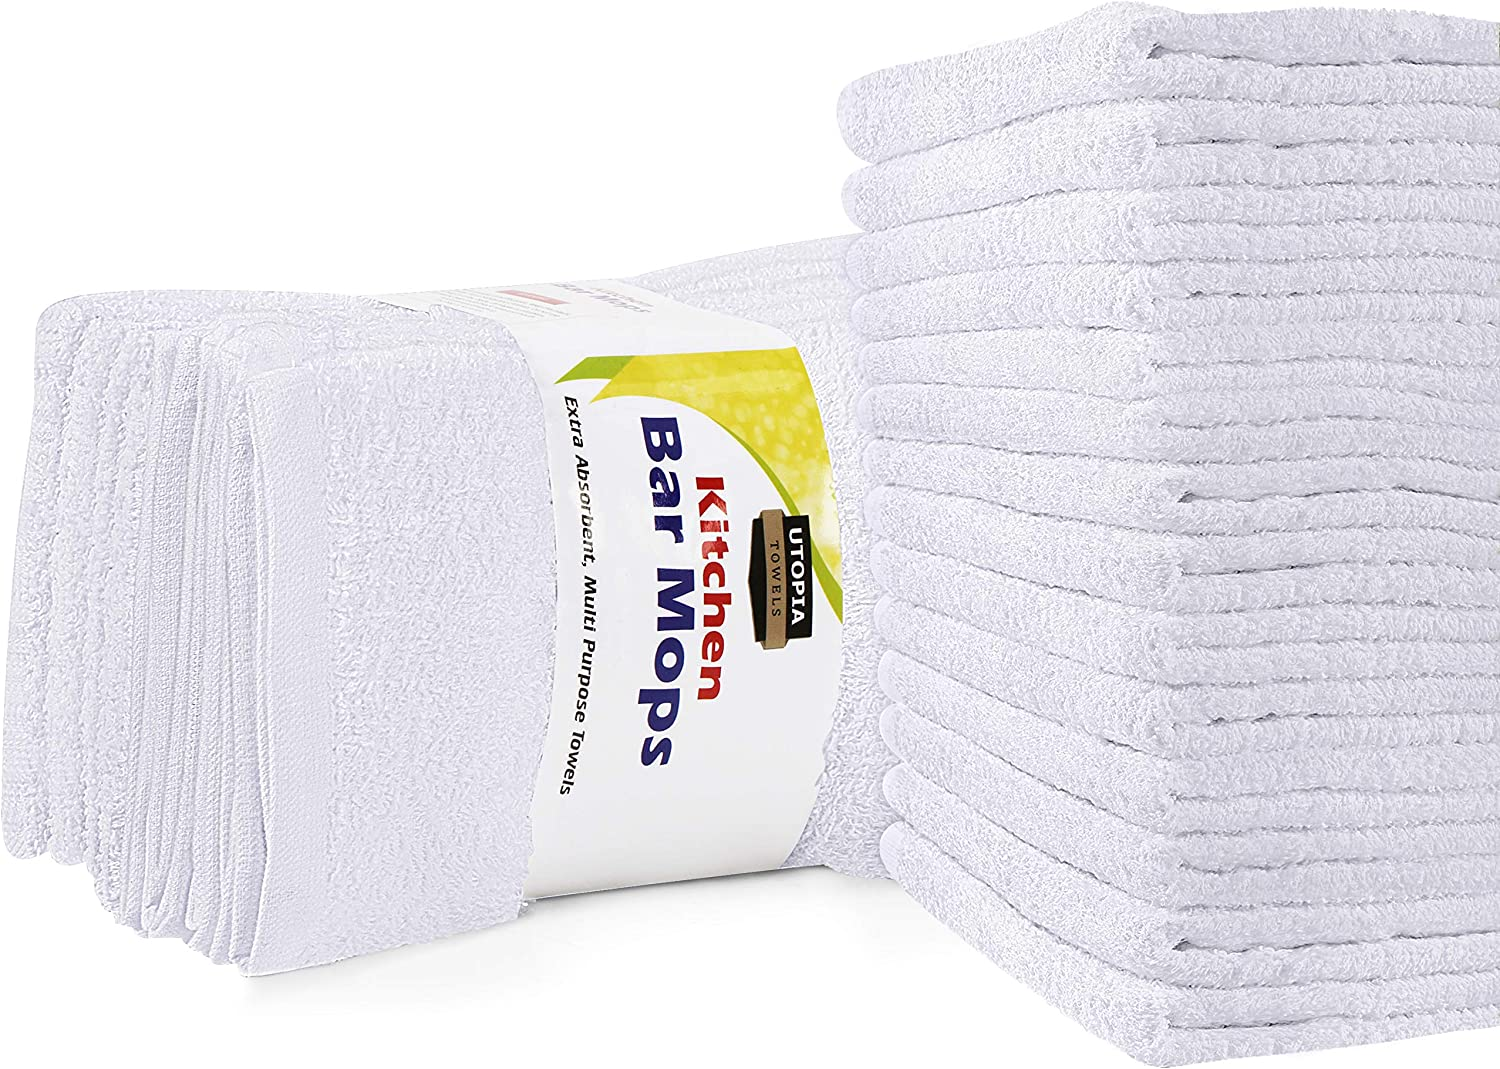 Utopia Towels Kitchen Bar Mops Towels, Pack of 12 Towels - 16 x 19 Inches, 100% Cotton Super Absorbent White Bar Towels, Multi-Purpose Cleaning Towels for Home and Kitchen Bars: Home & Kitchen